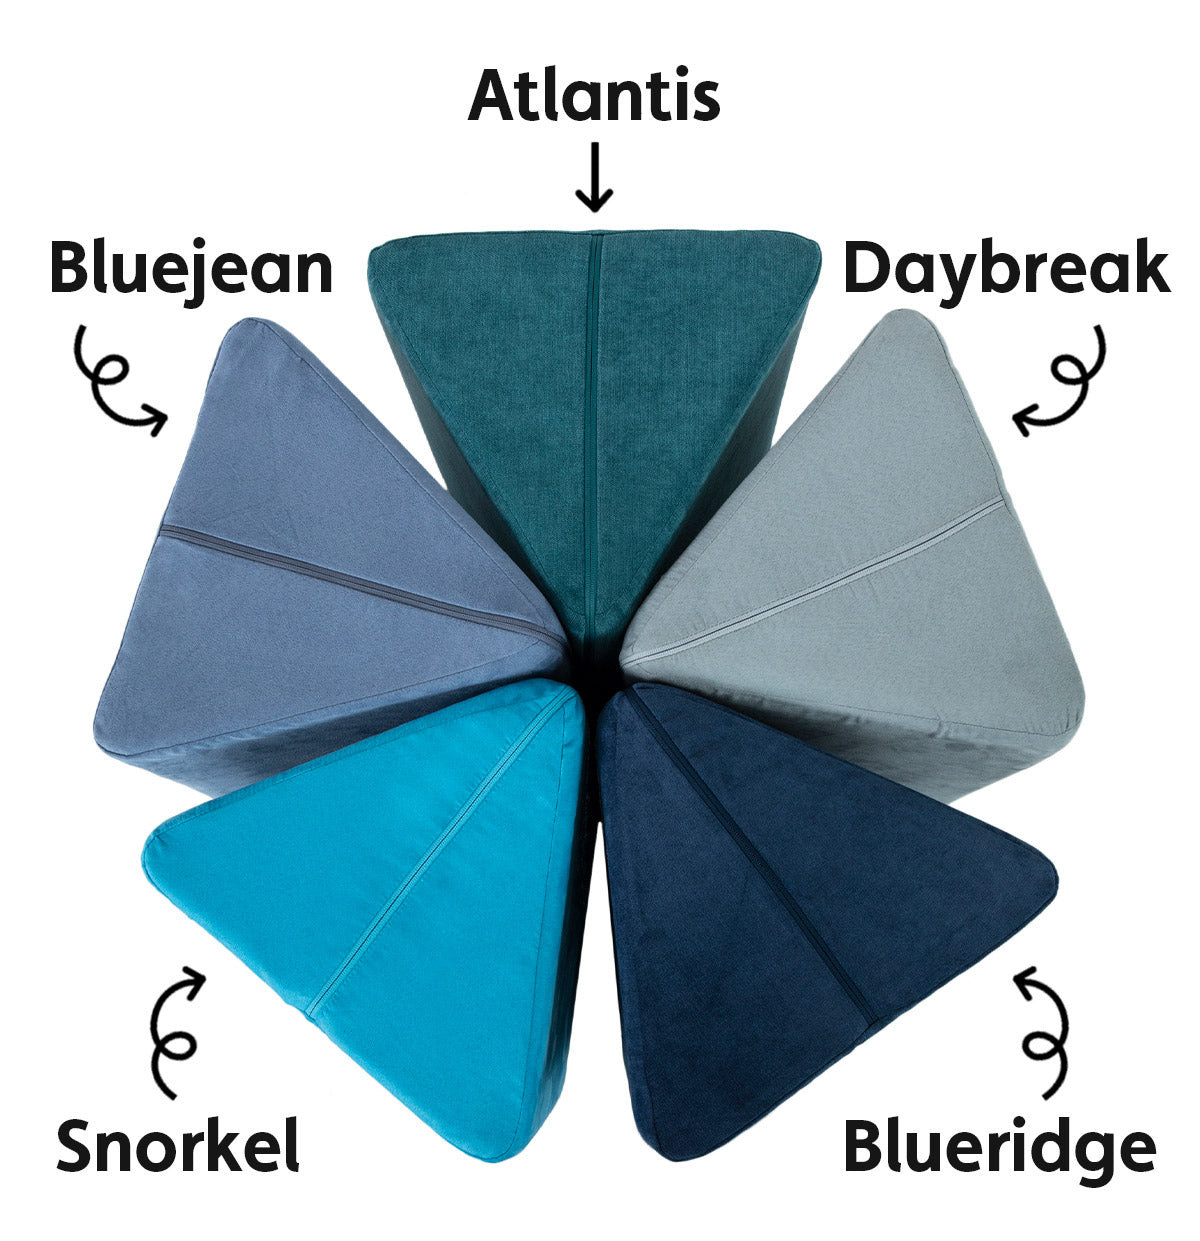 Five Nugget pillows in a circle formation, each a different color, with labels identifing them. Clockwise from the top center: Atlantis, Daybreak, Blueridge, Snorkel, and Bluejean.